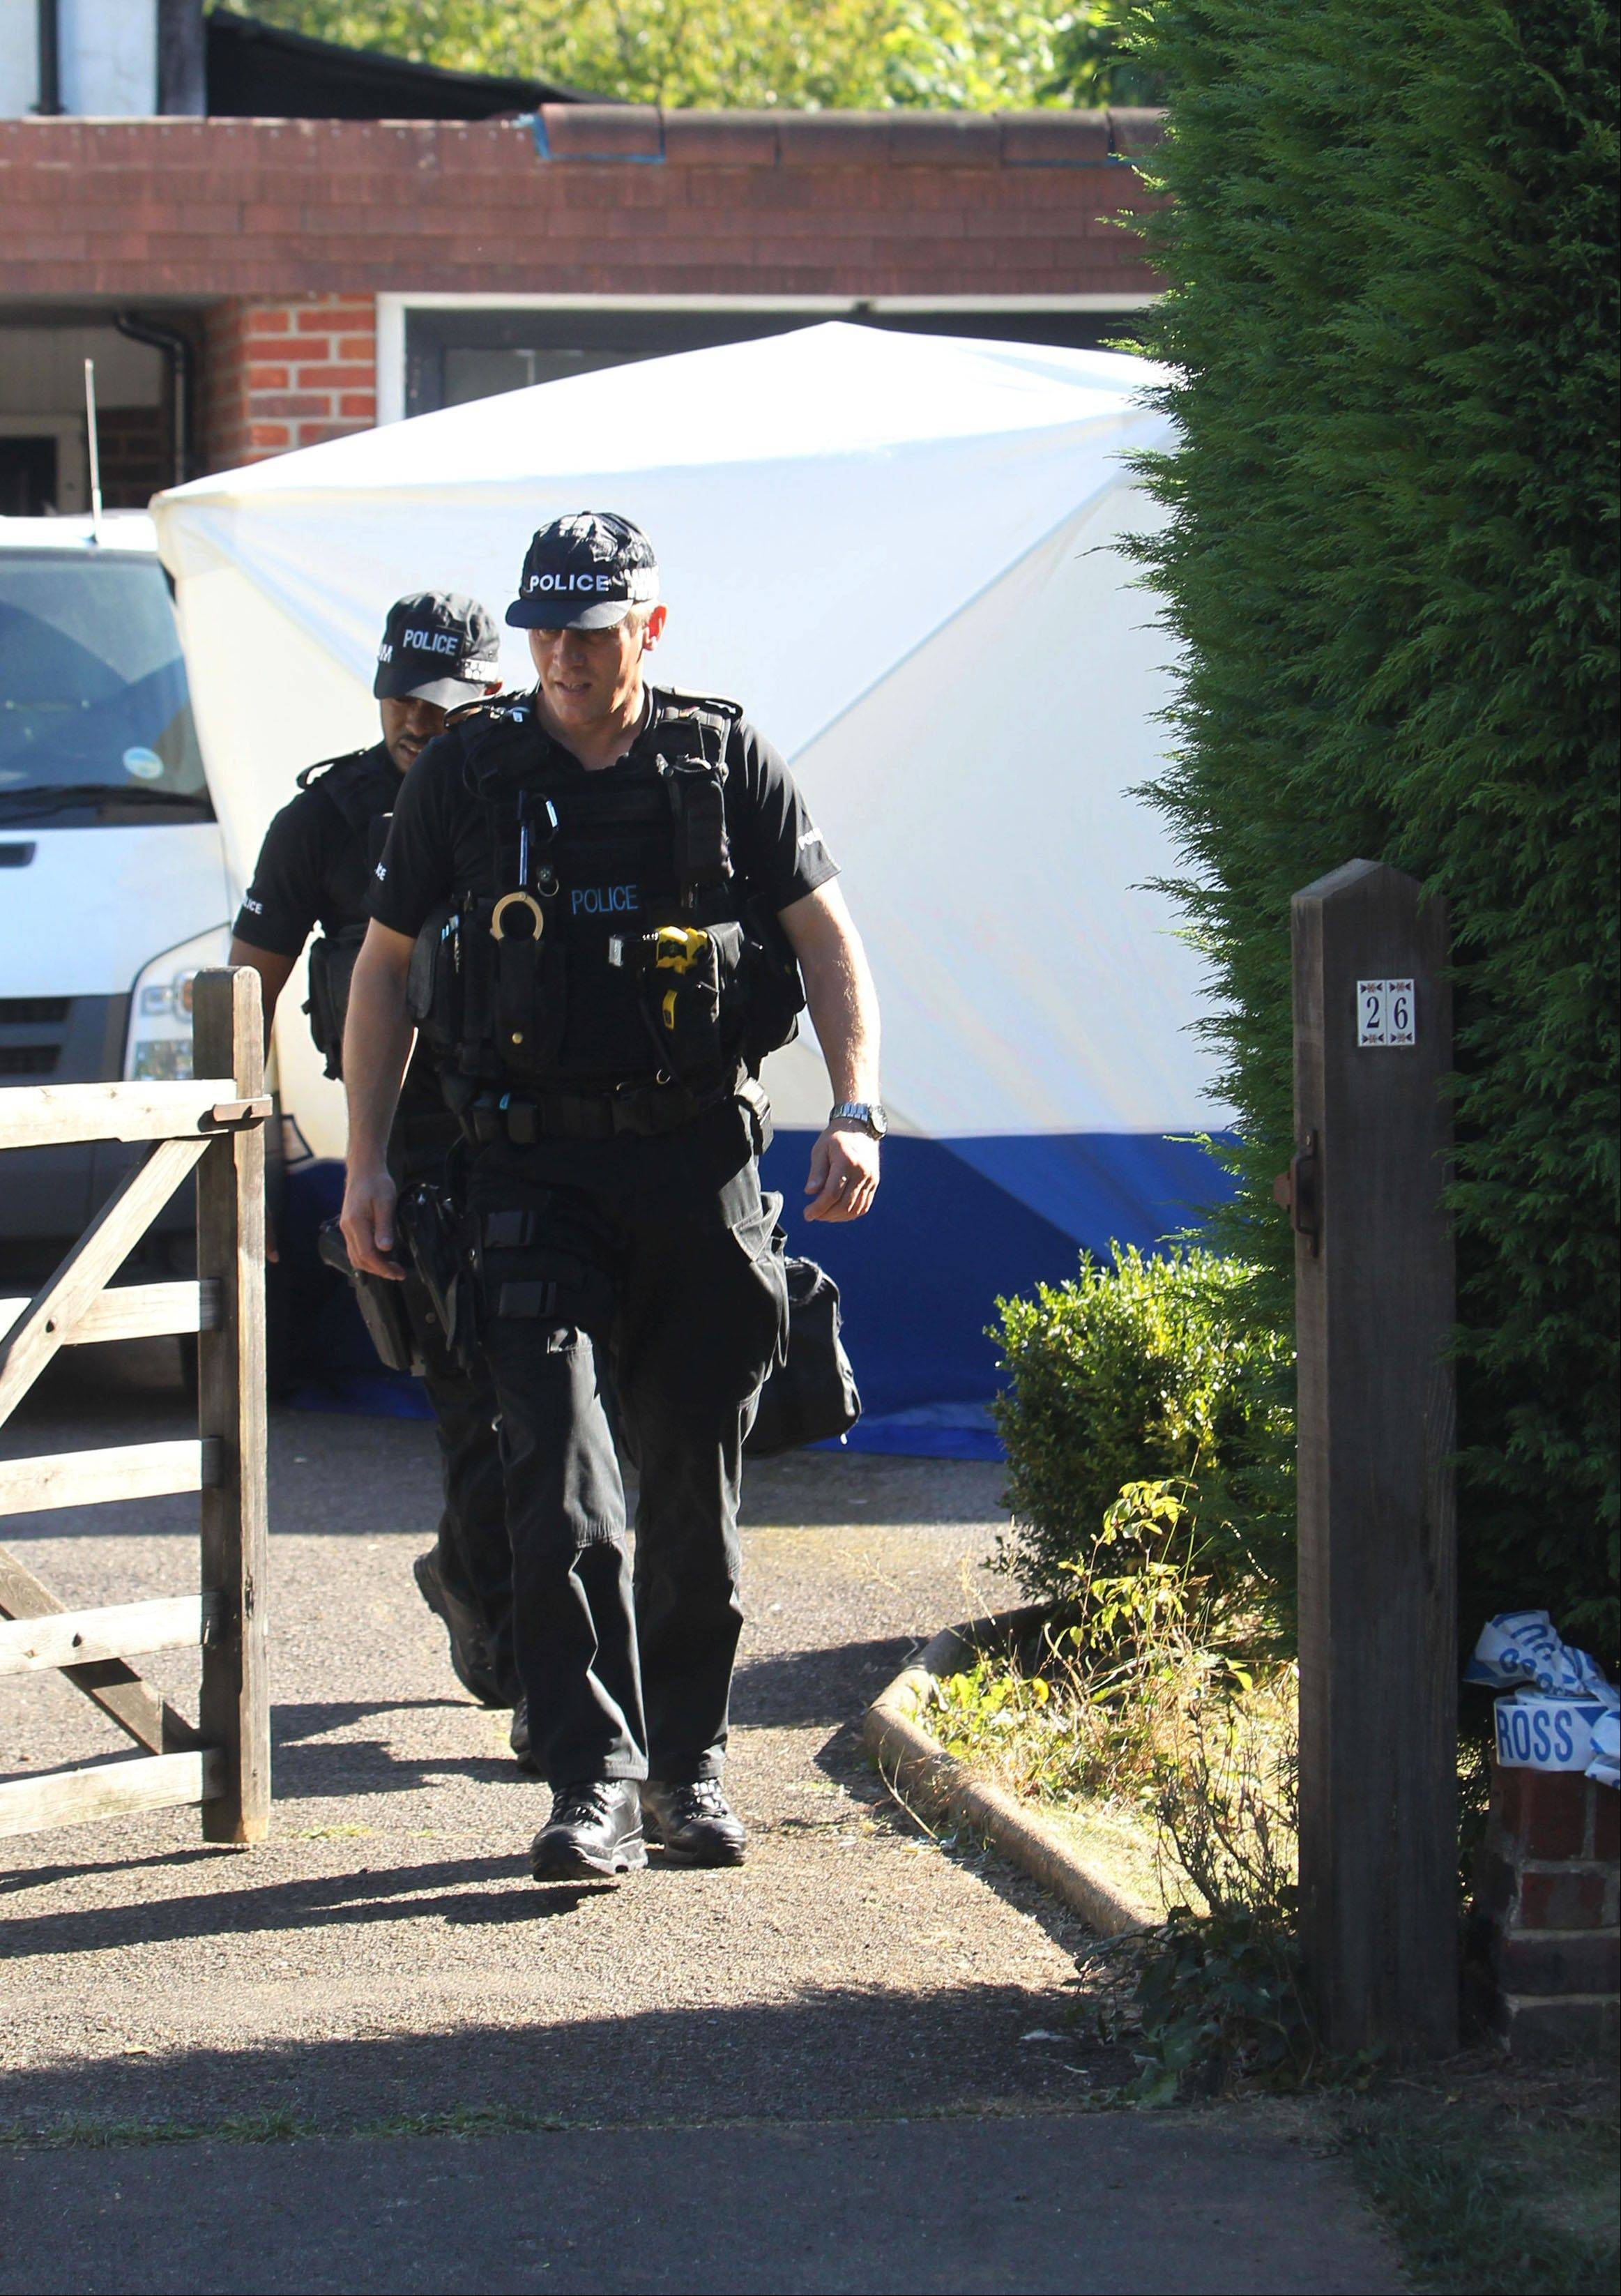 The home of Saad al-Hilli, in Claygate, England, who was shot dead on Wednesday with three others while vacationing in the French Alps, continued to be guarded Sunday by Surrey Police, who are assisting French police.